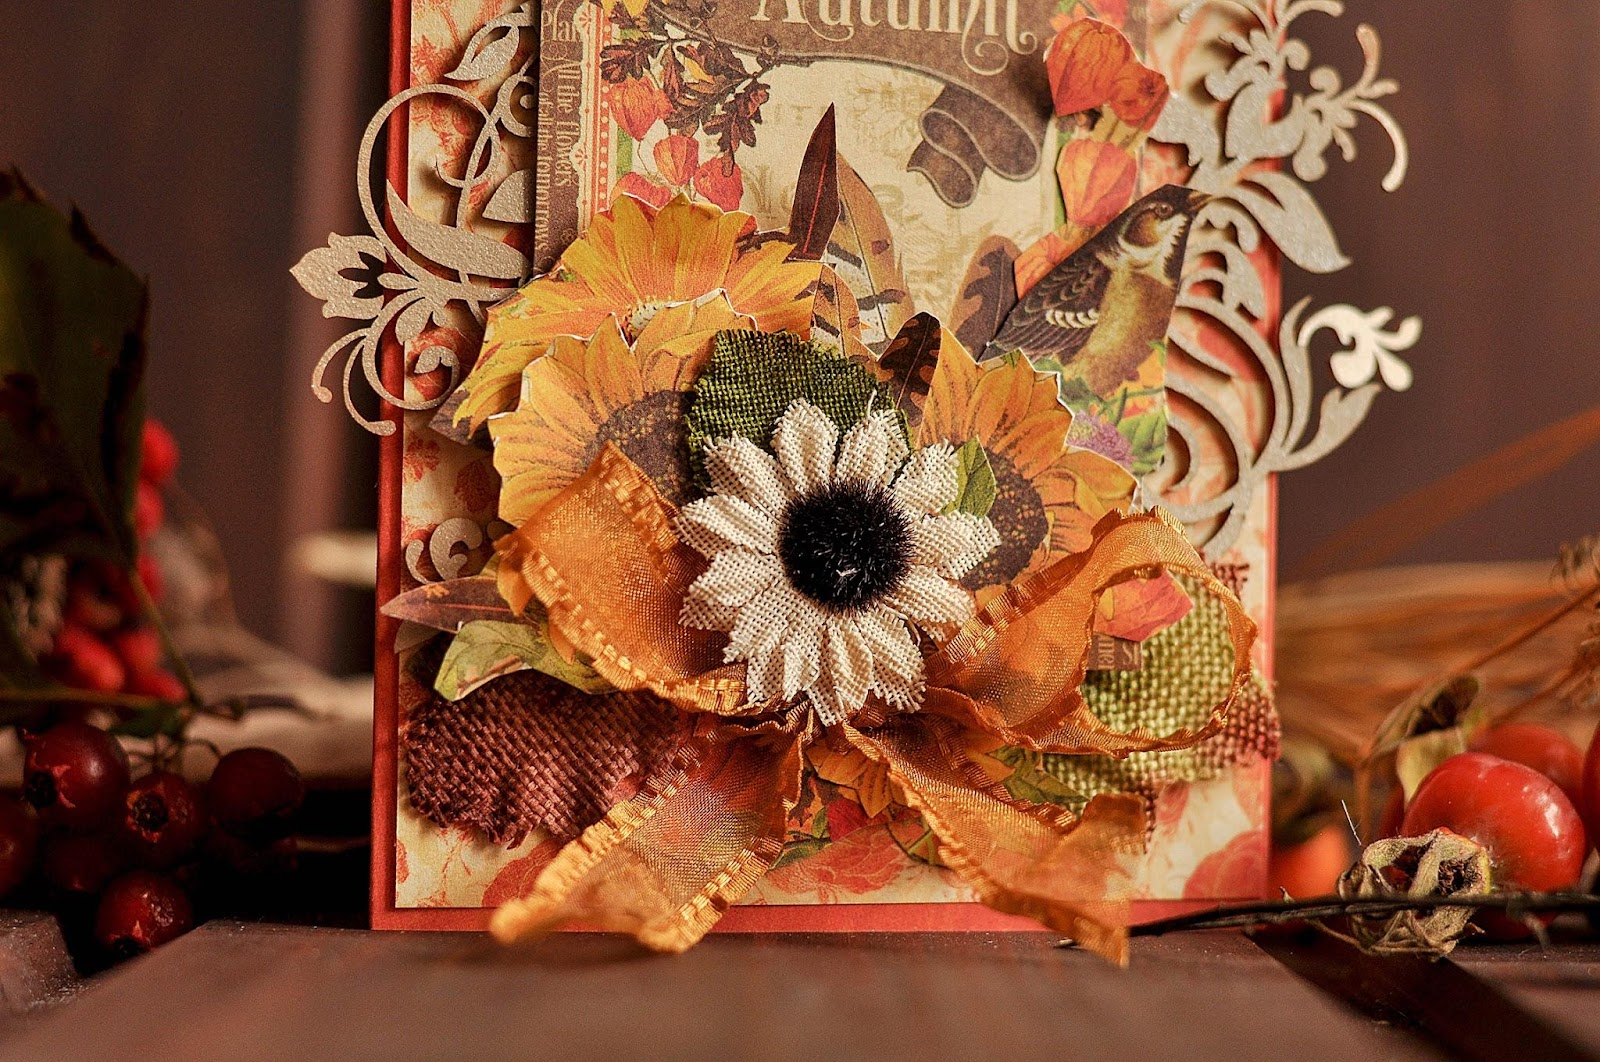 Cards-Seasons-Graphic 45-by Lena Astafeva-11.jpg